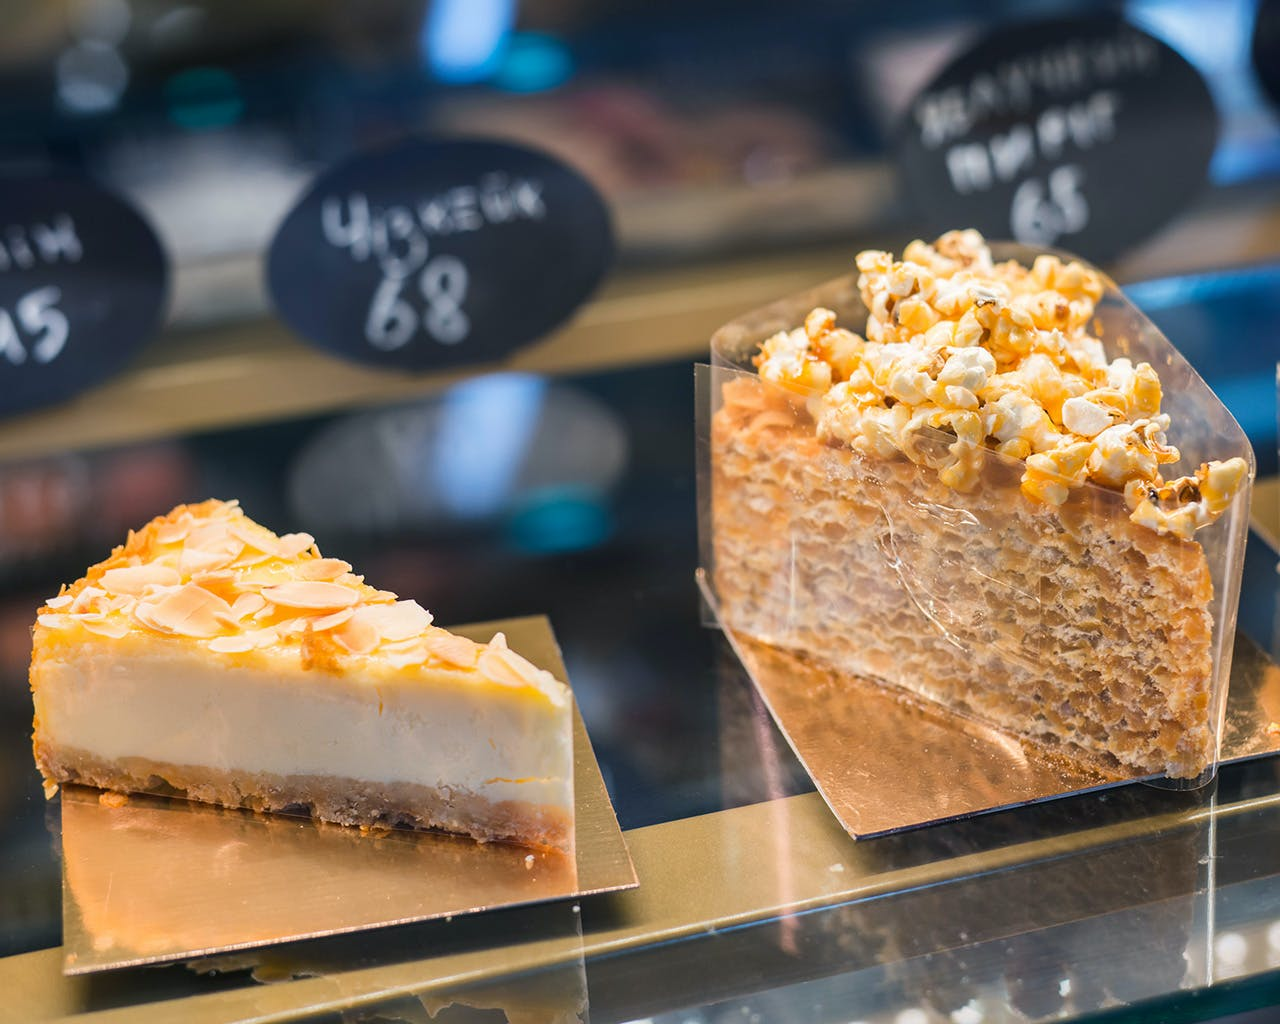 Get Sugar-Free And Diabetic-Friendly Desserts From These Online Bakeries